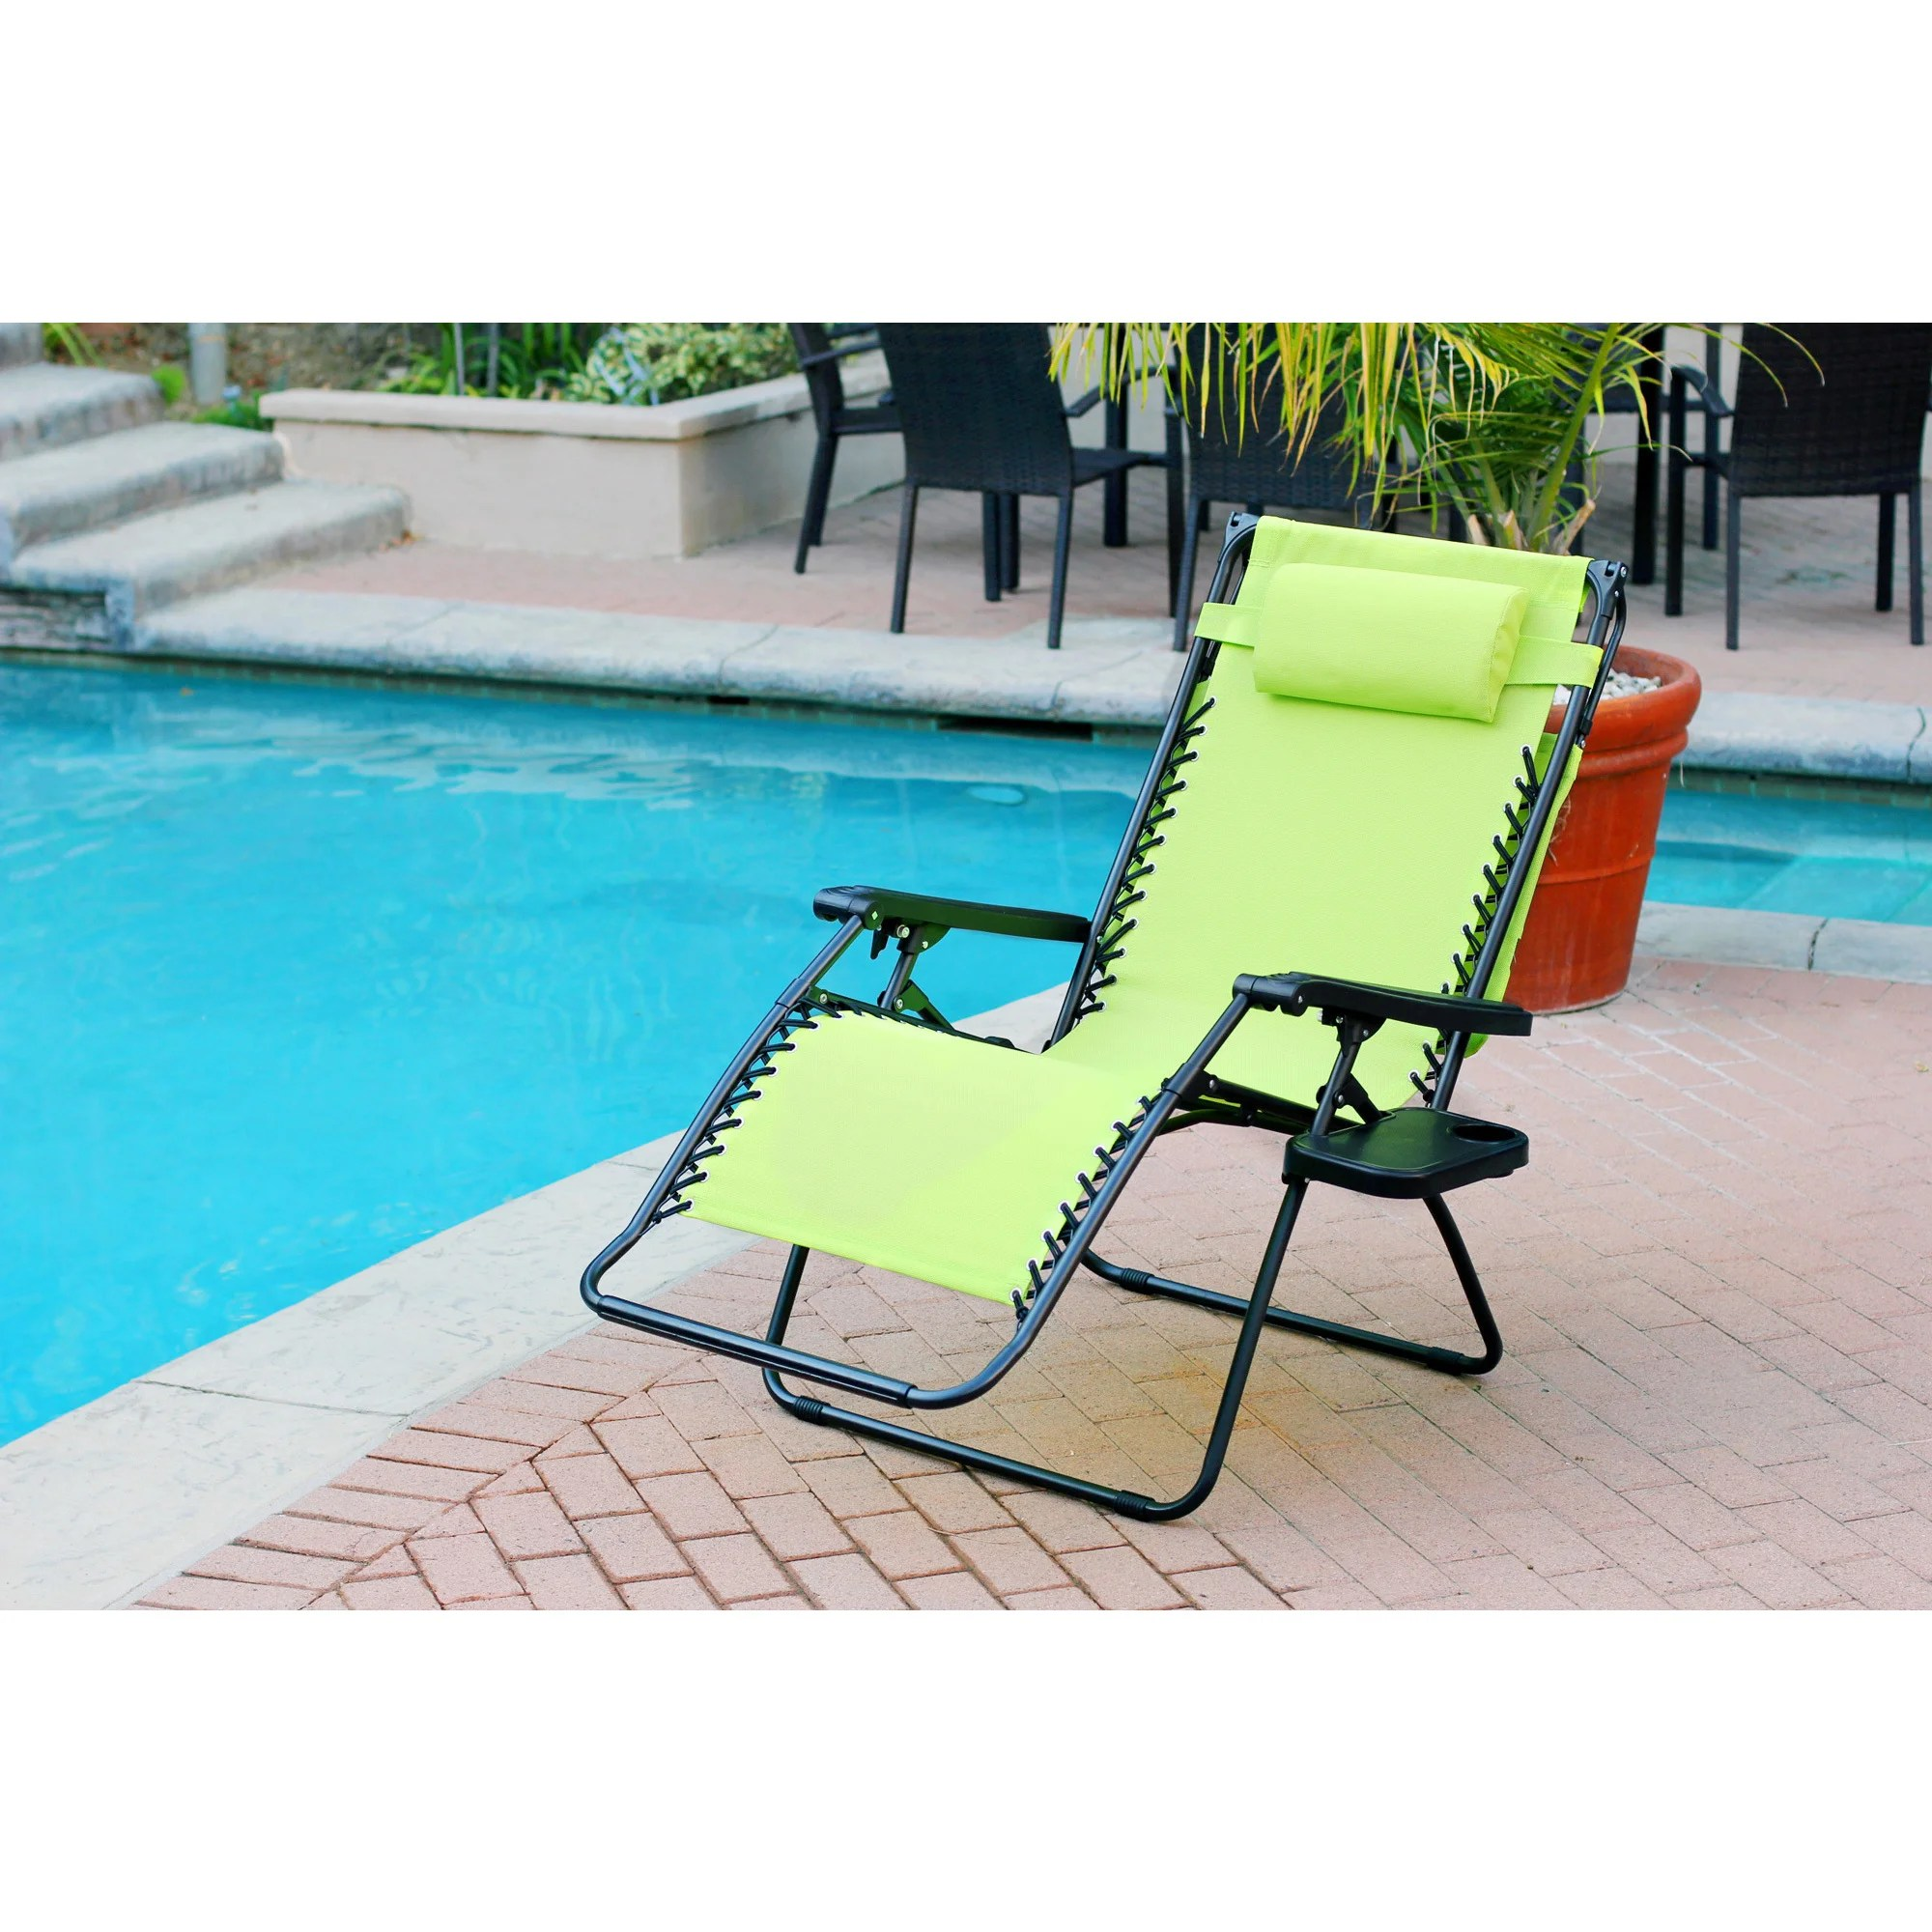 Oversized Zero Gravity Chair Havenside Home Garden City Oversized Zero Gravity Chair With Sunshade And Drink Tray